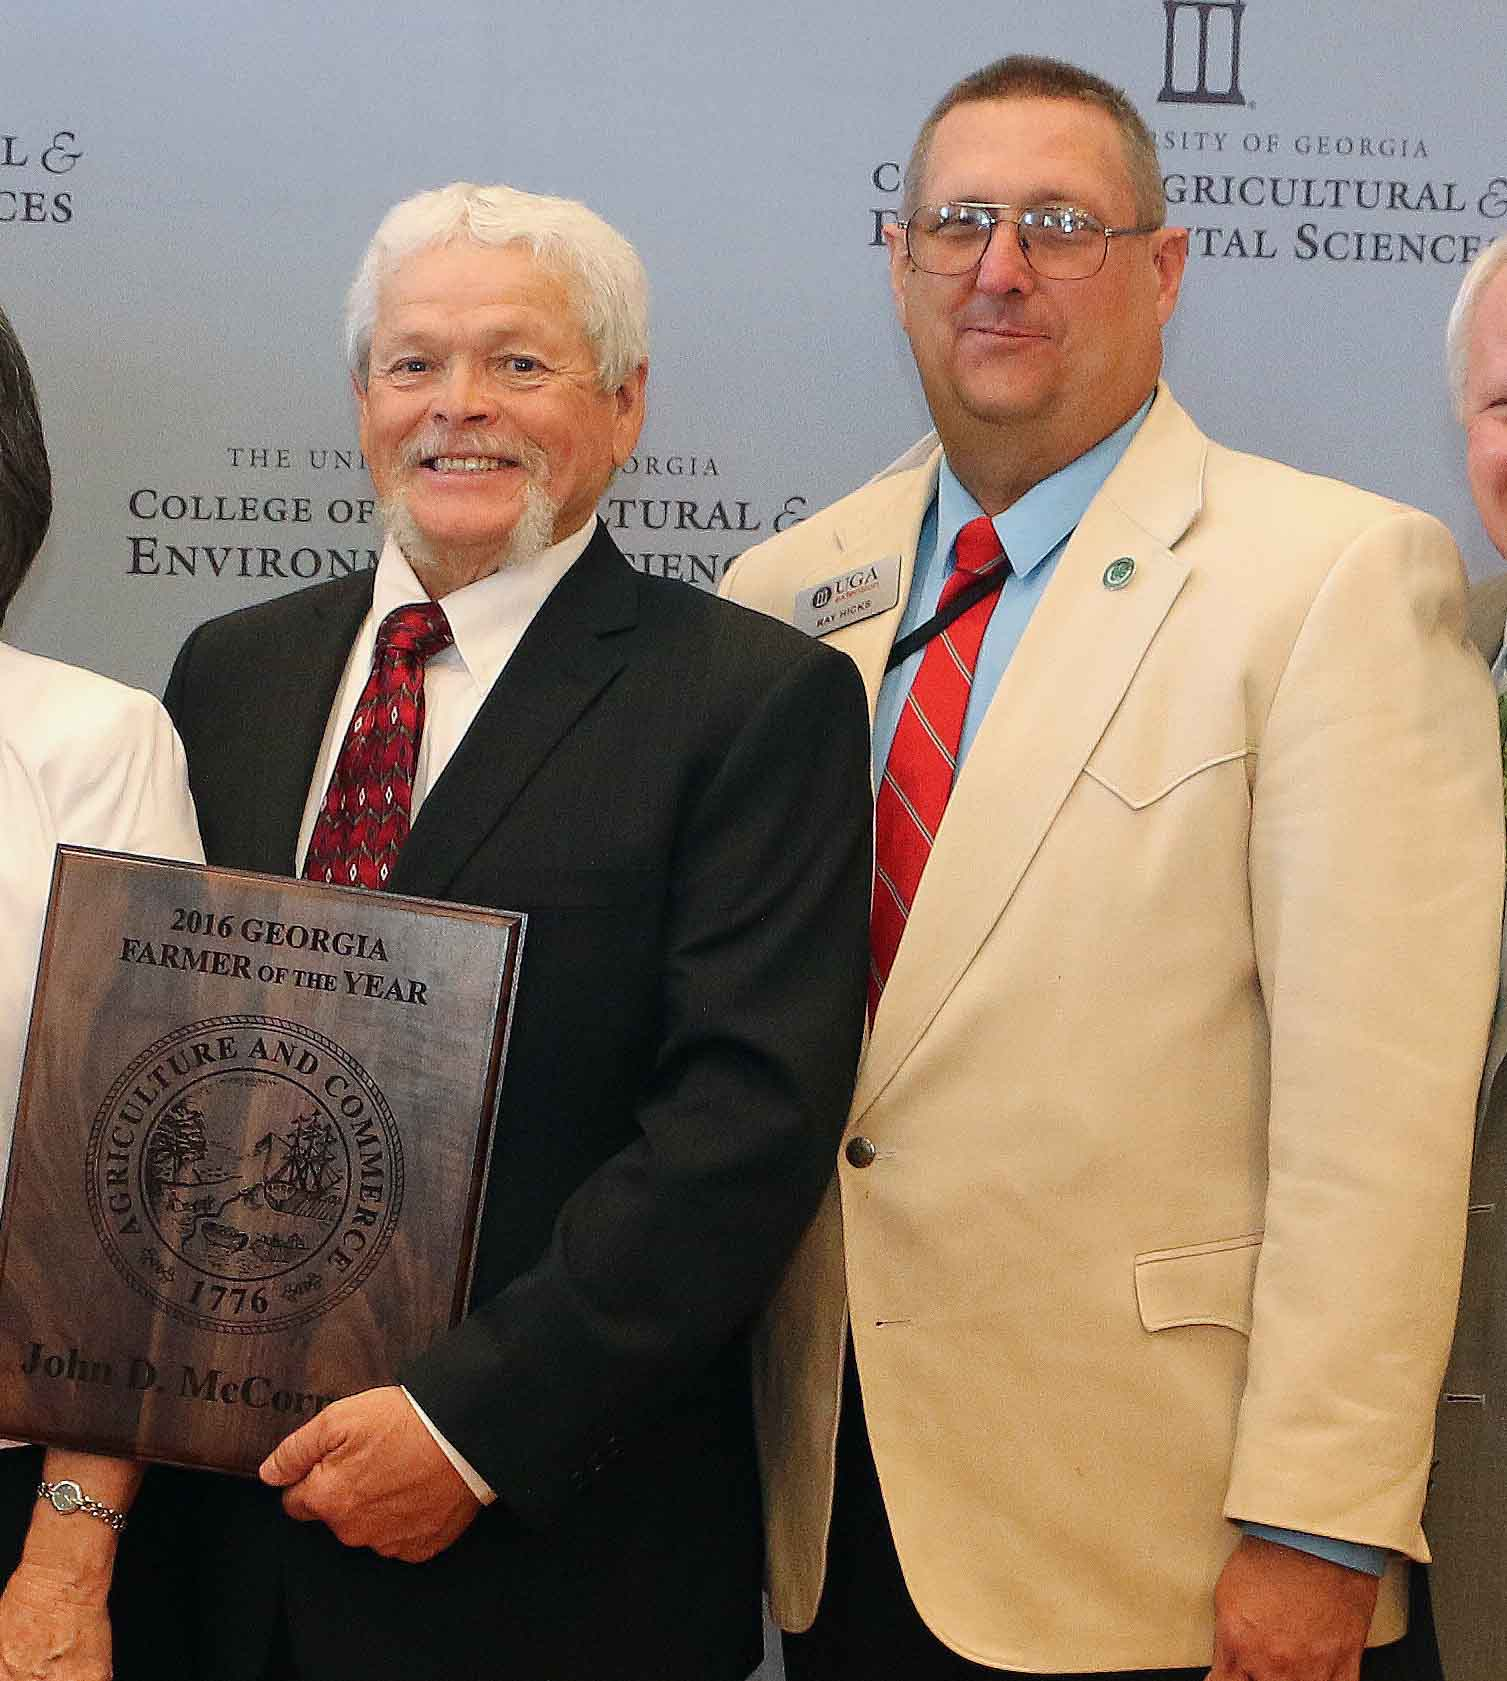 Georgia Farmer of the Year for 2016, John McCormick and his wife Paula McCormick, accept his award from Gov. Nathan Deal. Screven County Extension Coordinator Ray Hicks and Georgia House Majority Leader, Rep. Jon Burns, are on hand to congratulate them.